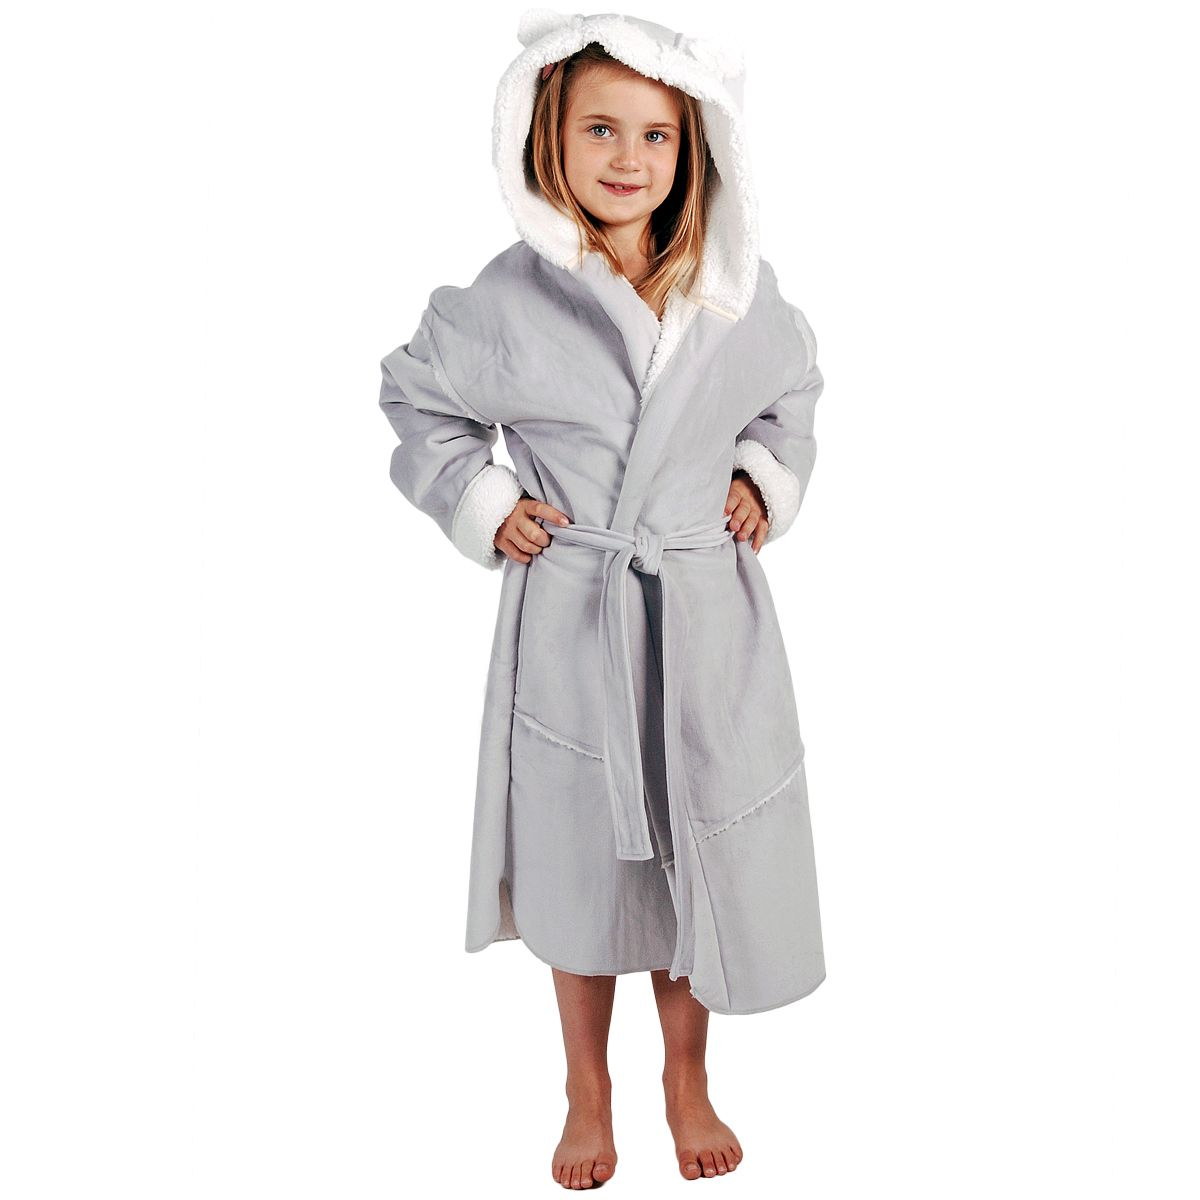 peignoir robe de chambre enfant gris perle en peau lain brod et personnalis au pr nom linge. Black Bedroom Furniture Sets. Home Design Ideas